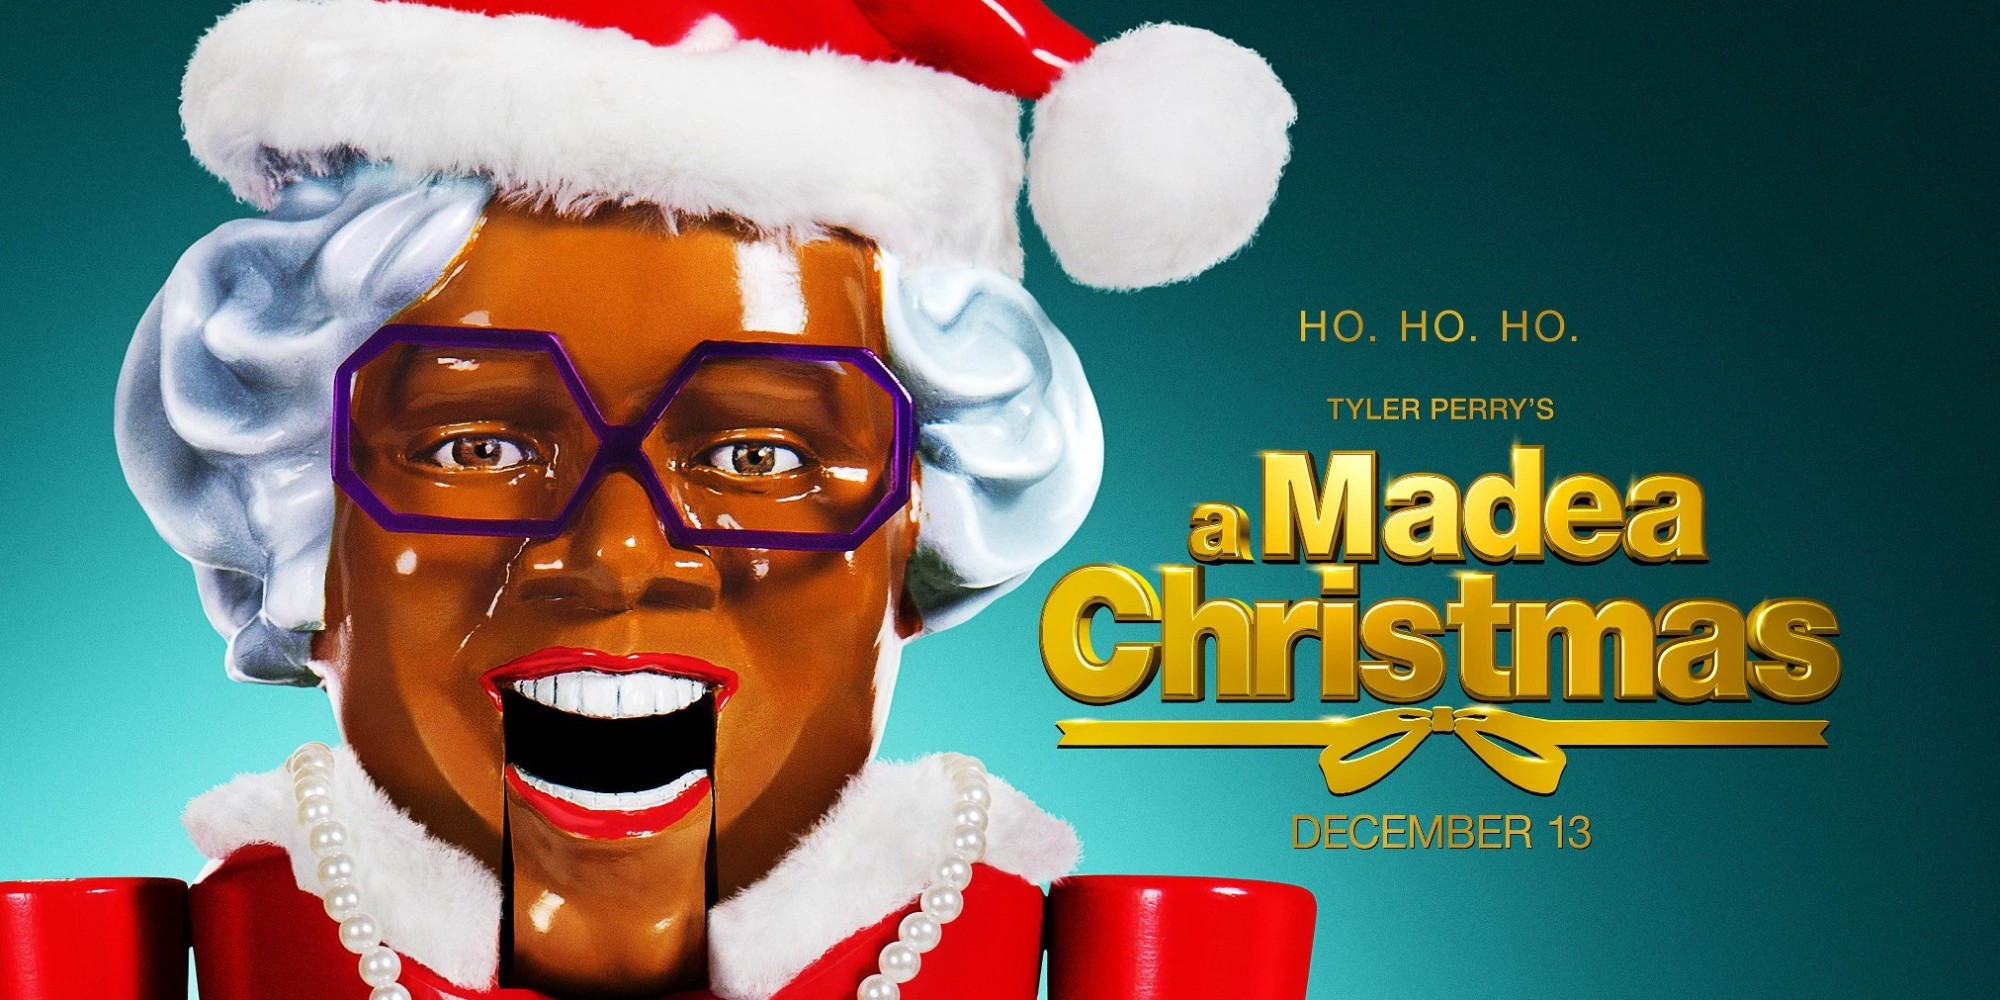 tyler perrys a madea christmas full movie free - Madea Christmas Full Movie